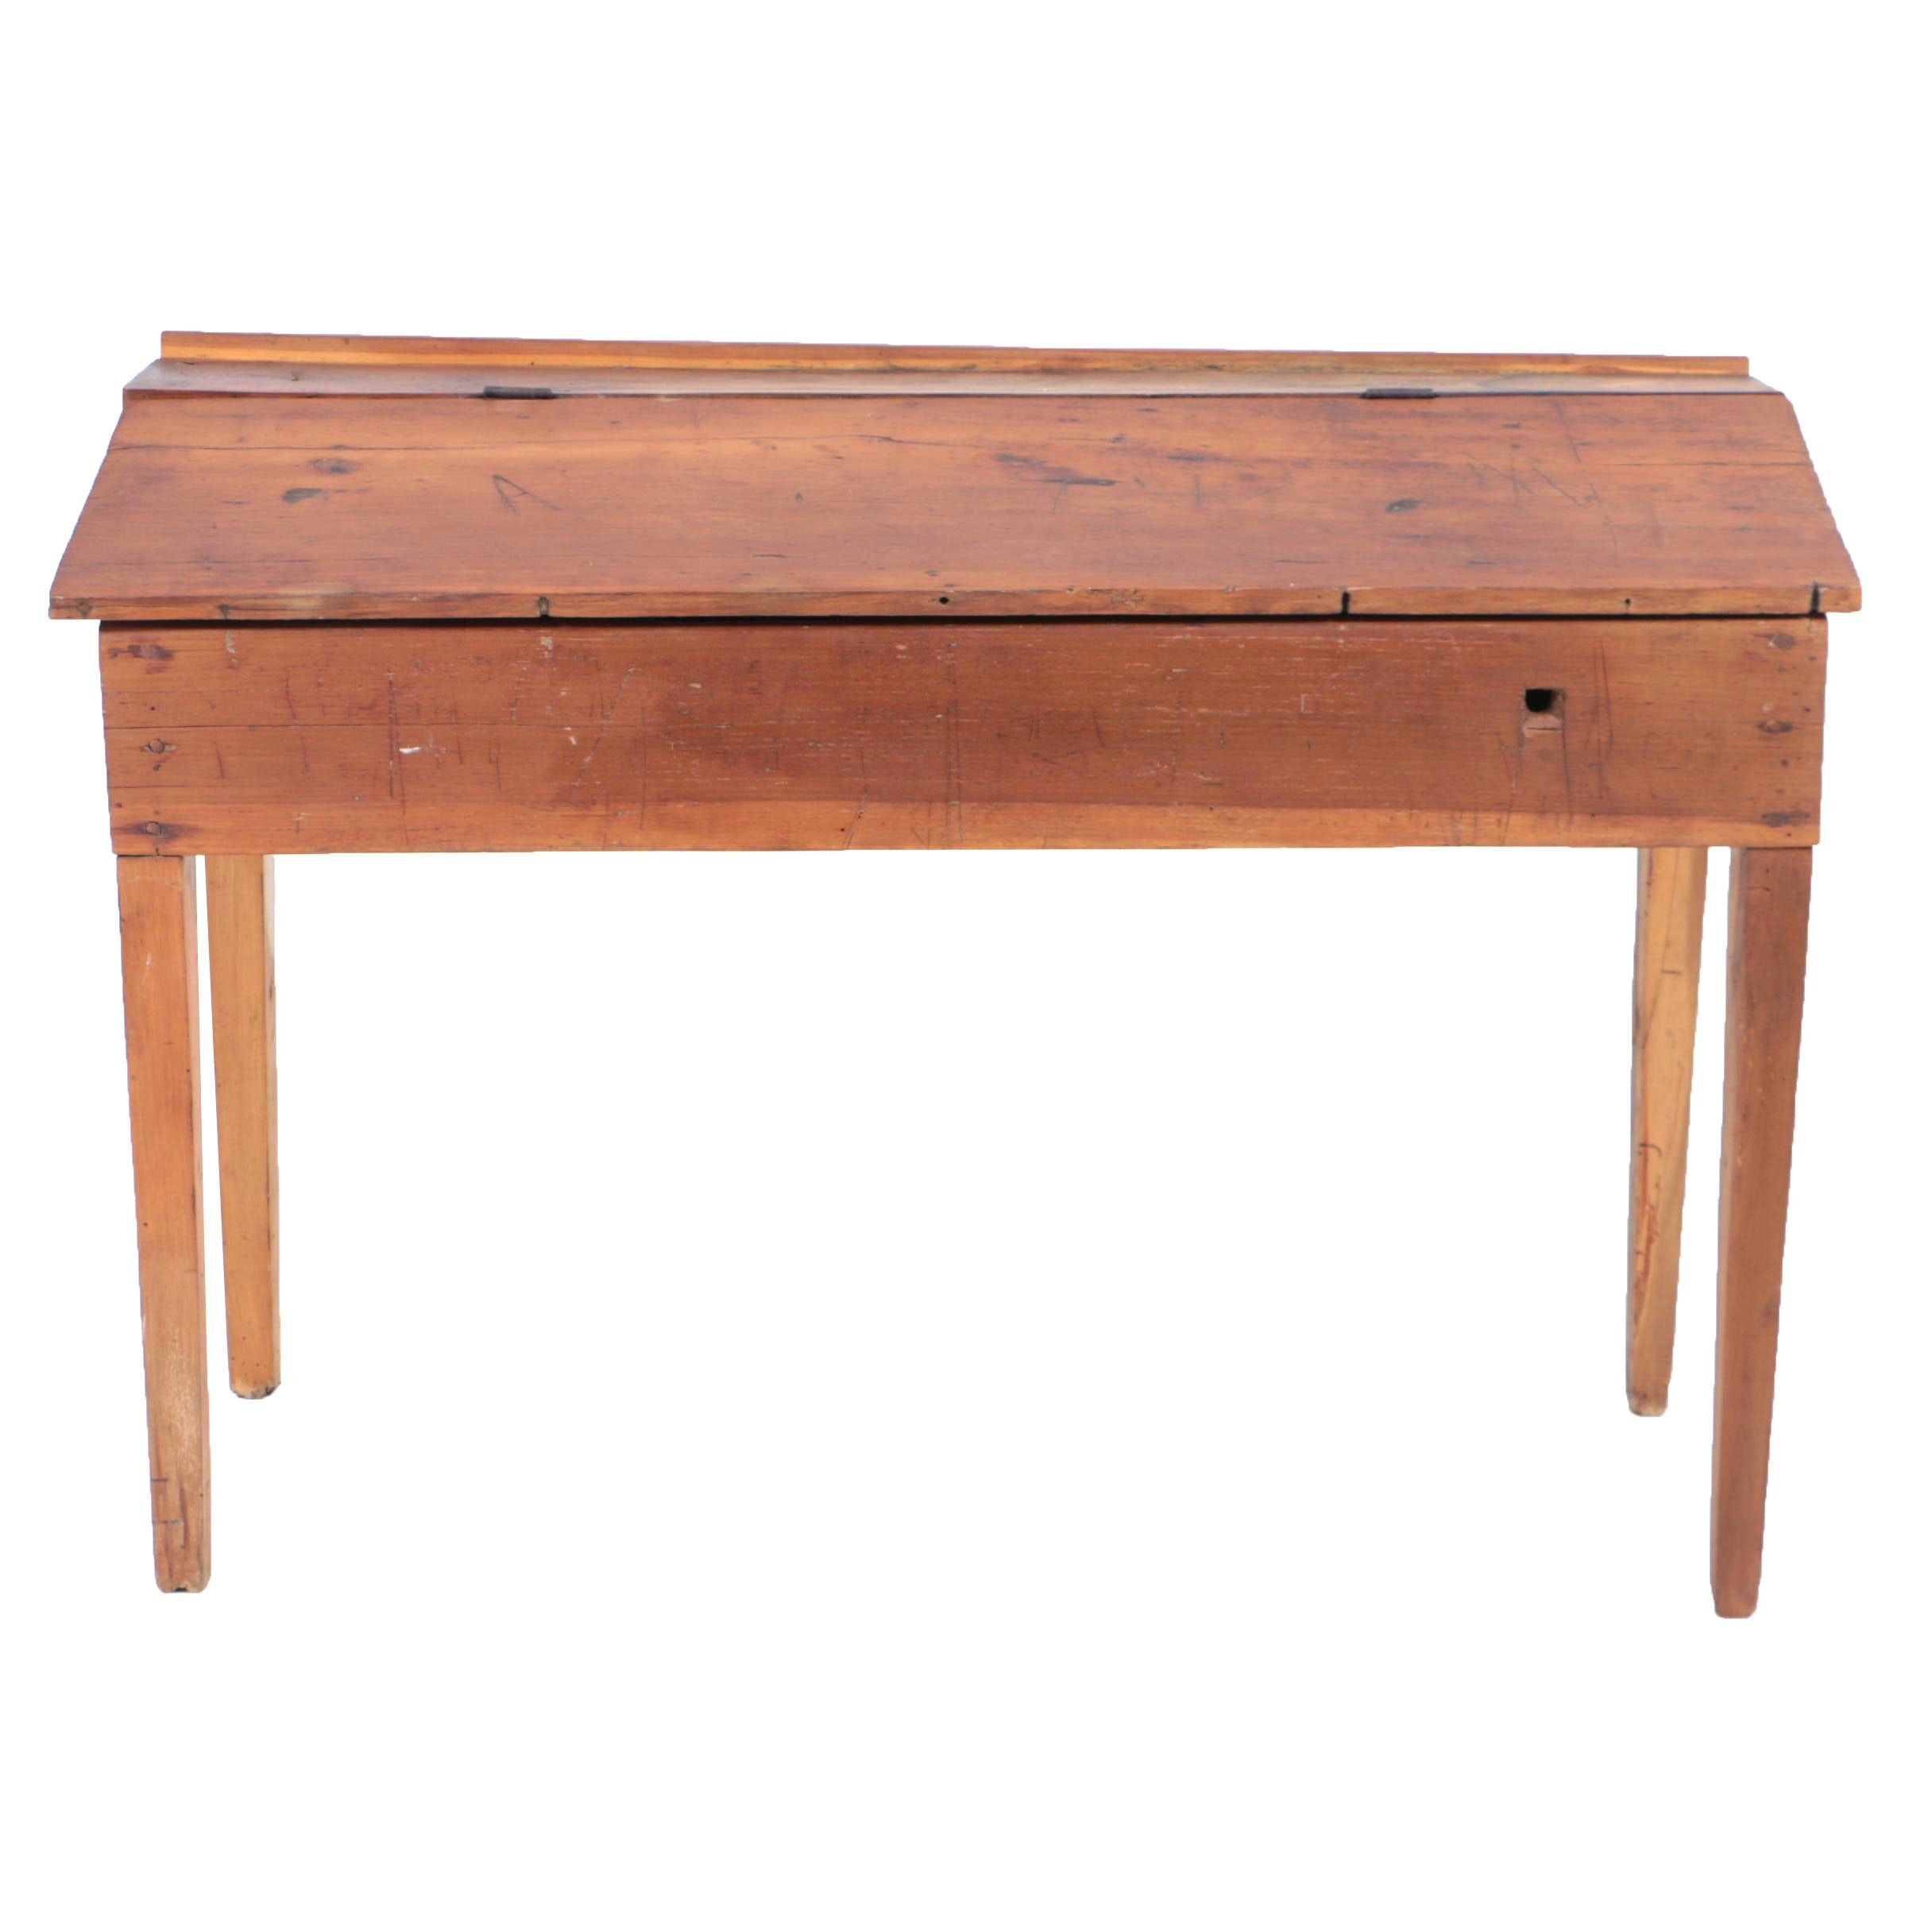 Antique Poplar Lift-Top Writing Desk